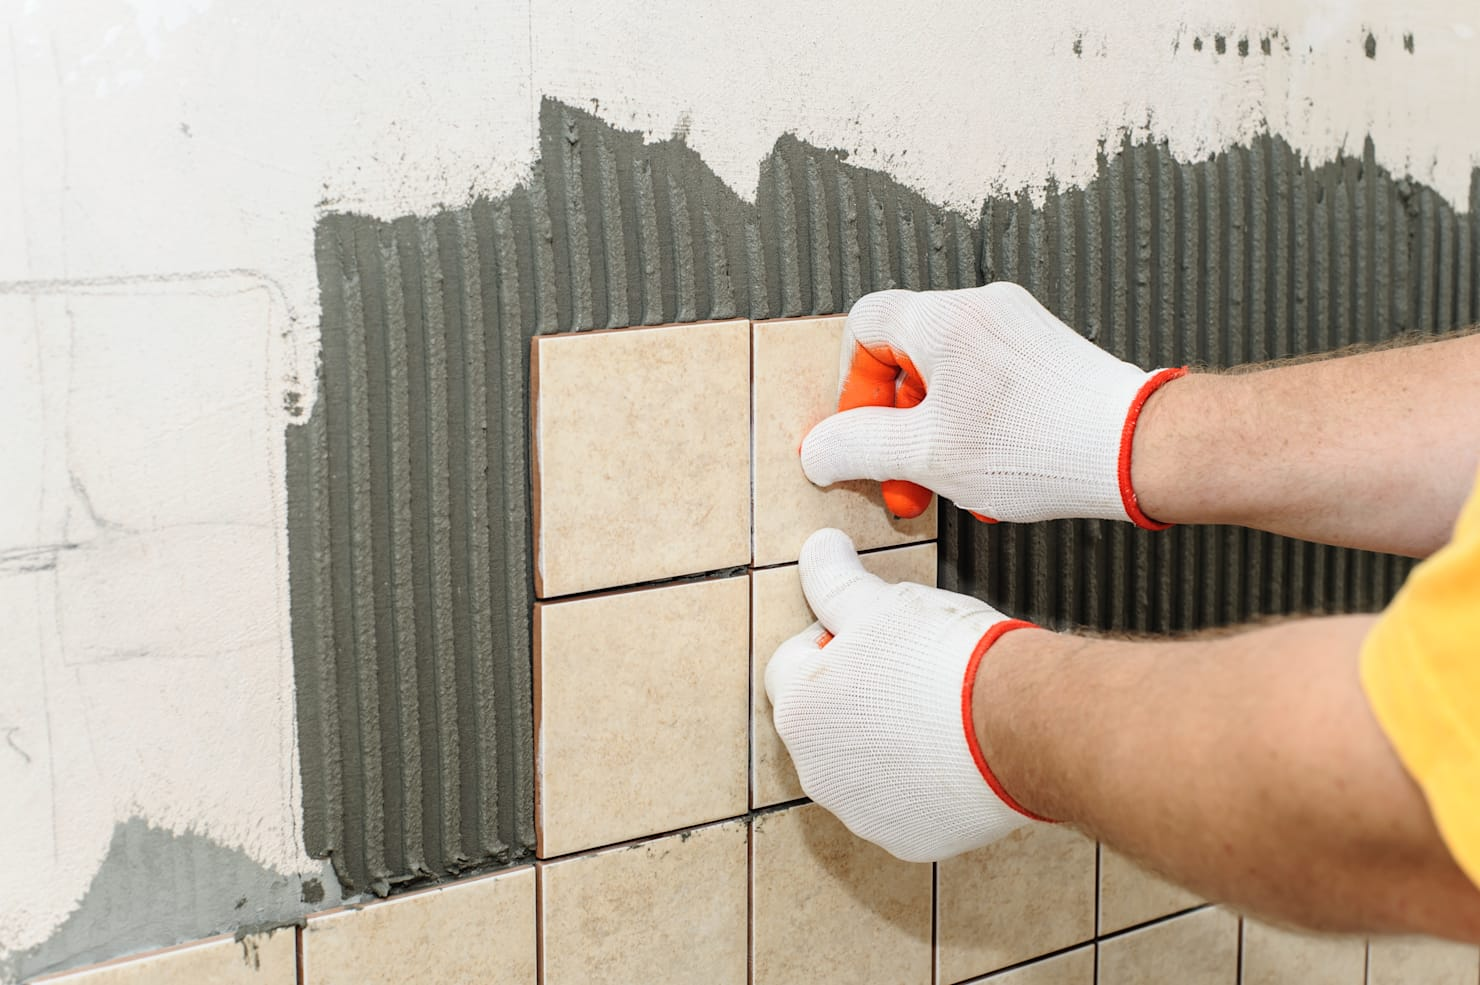 DIY: how to do your own tiles (super easy!)